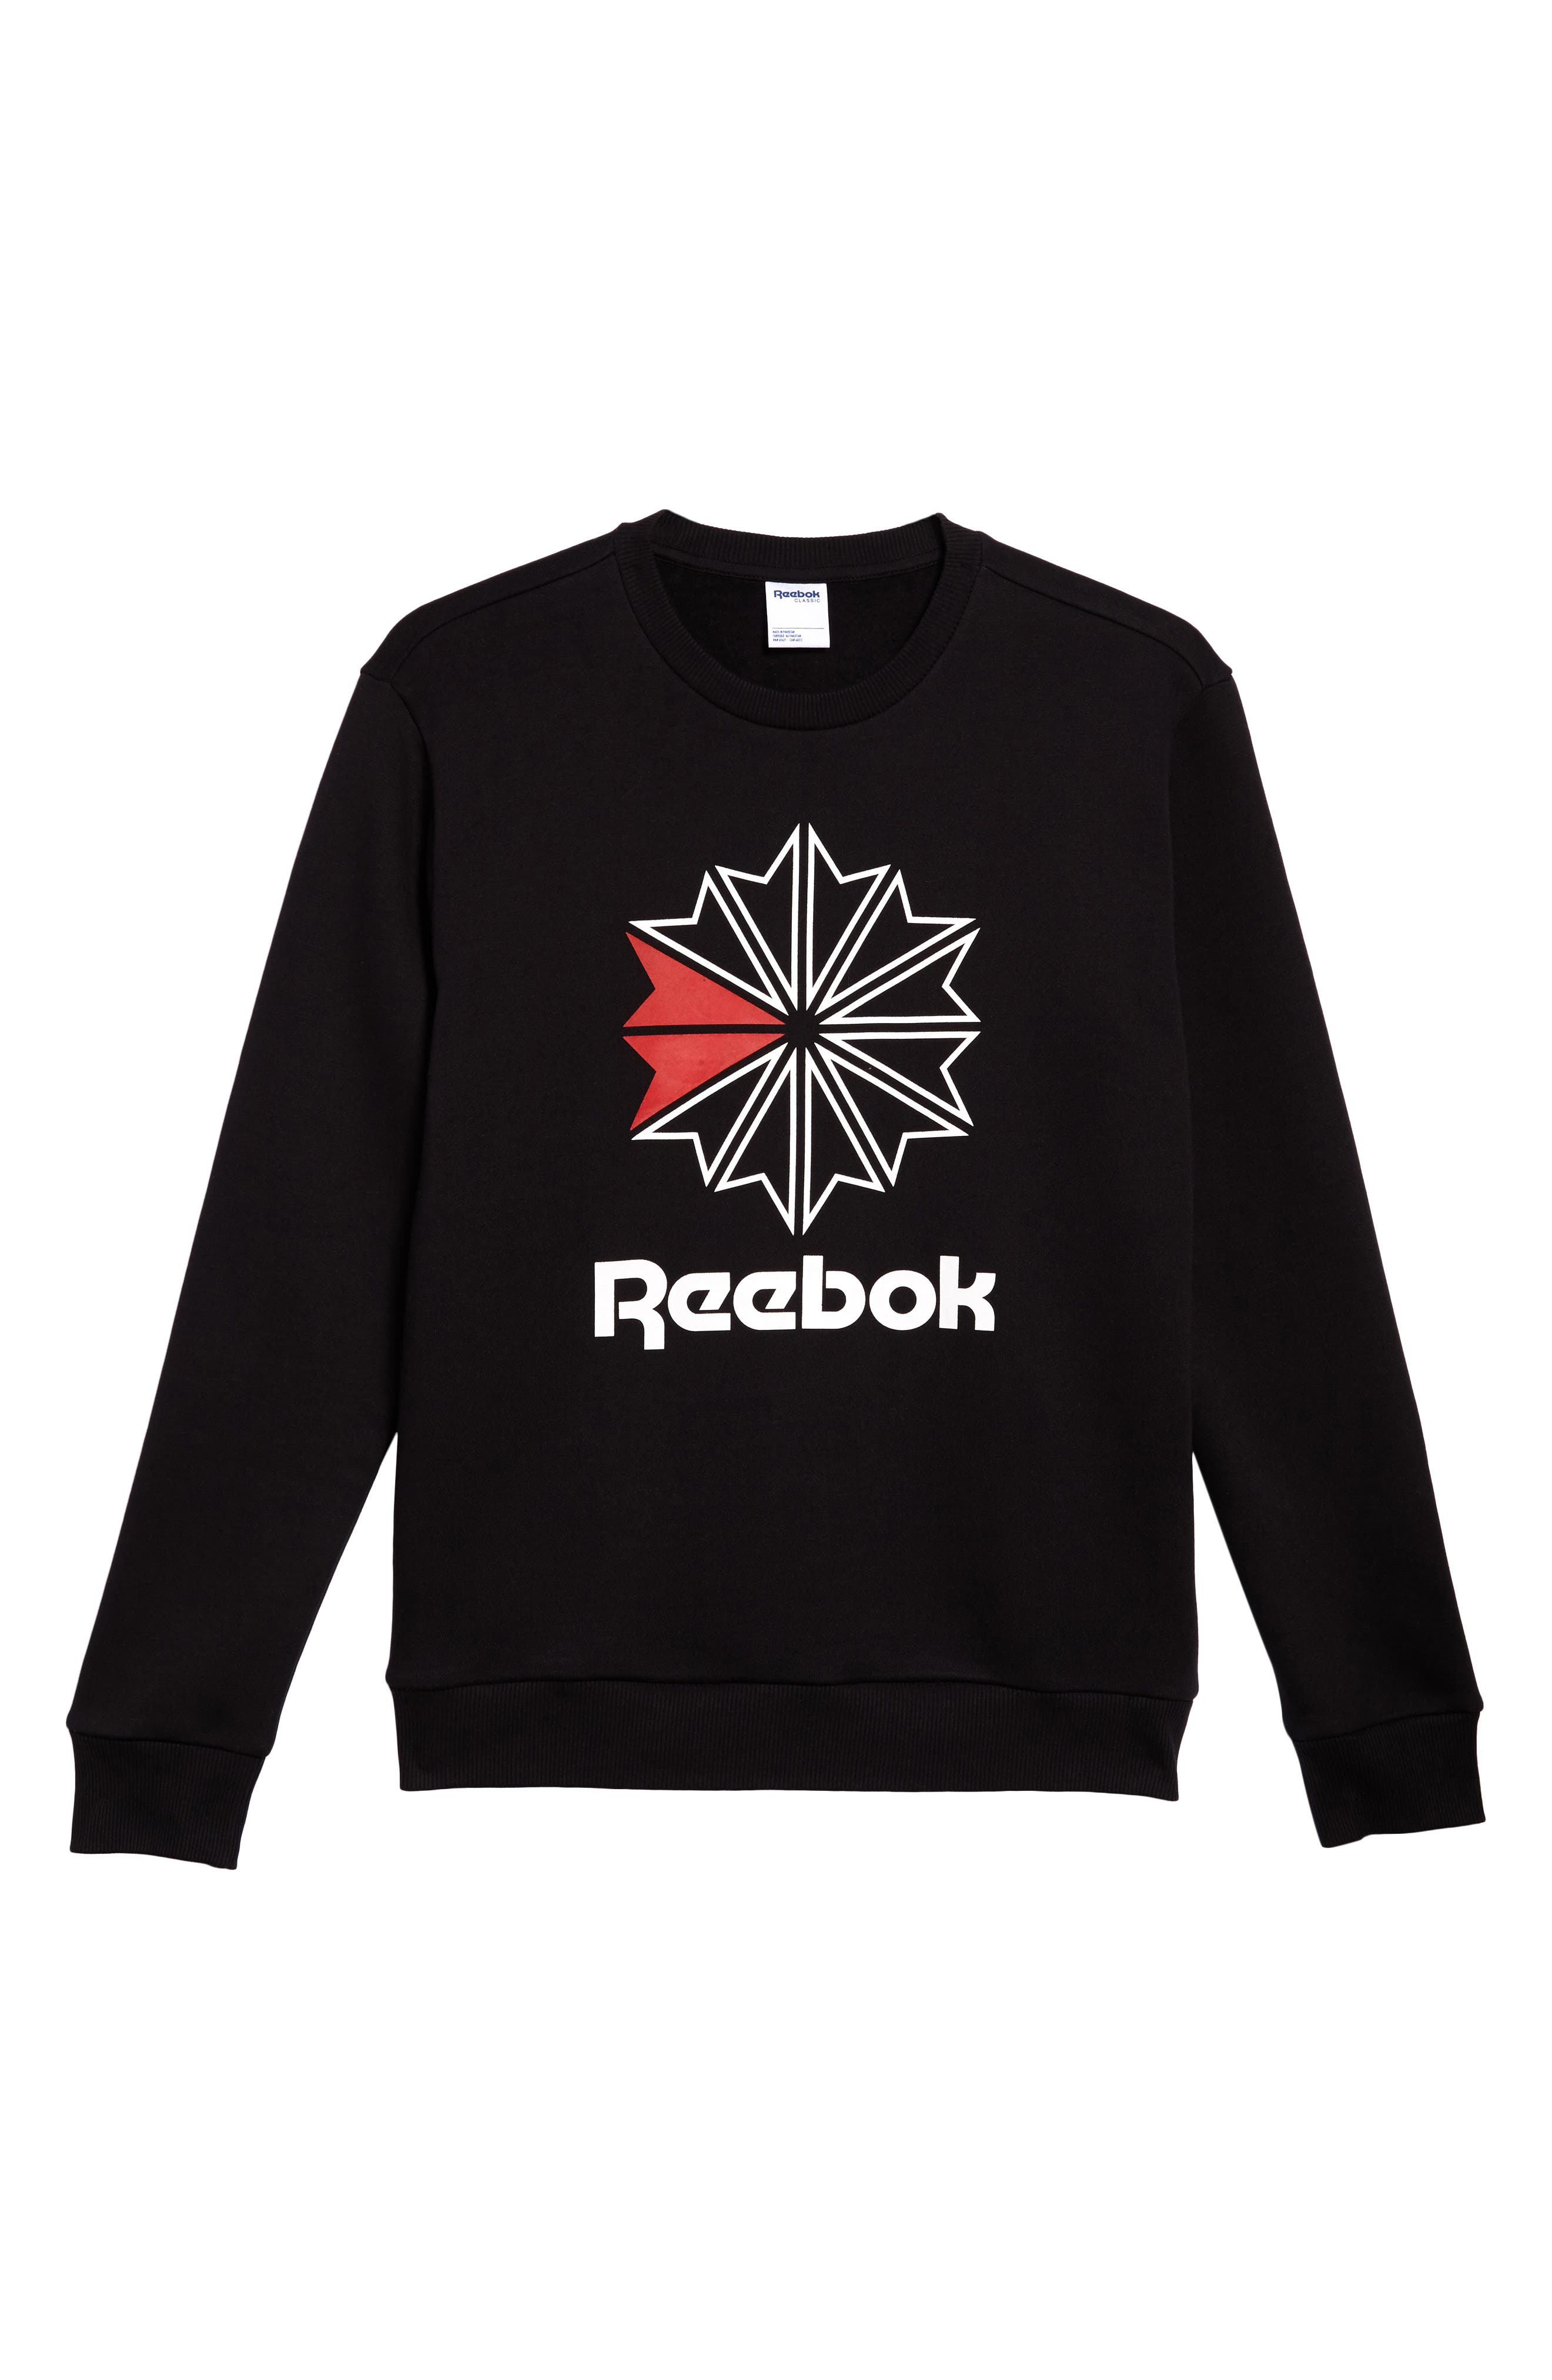 Starcrest Sweatshirt,                             Alternate thumbnail 6, color,                             005